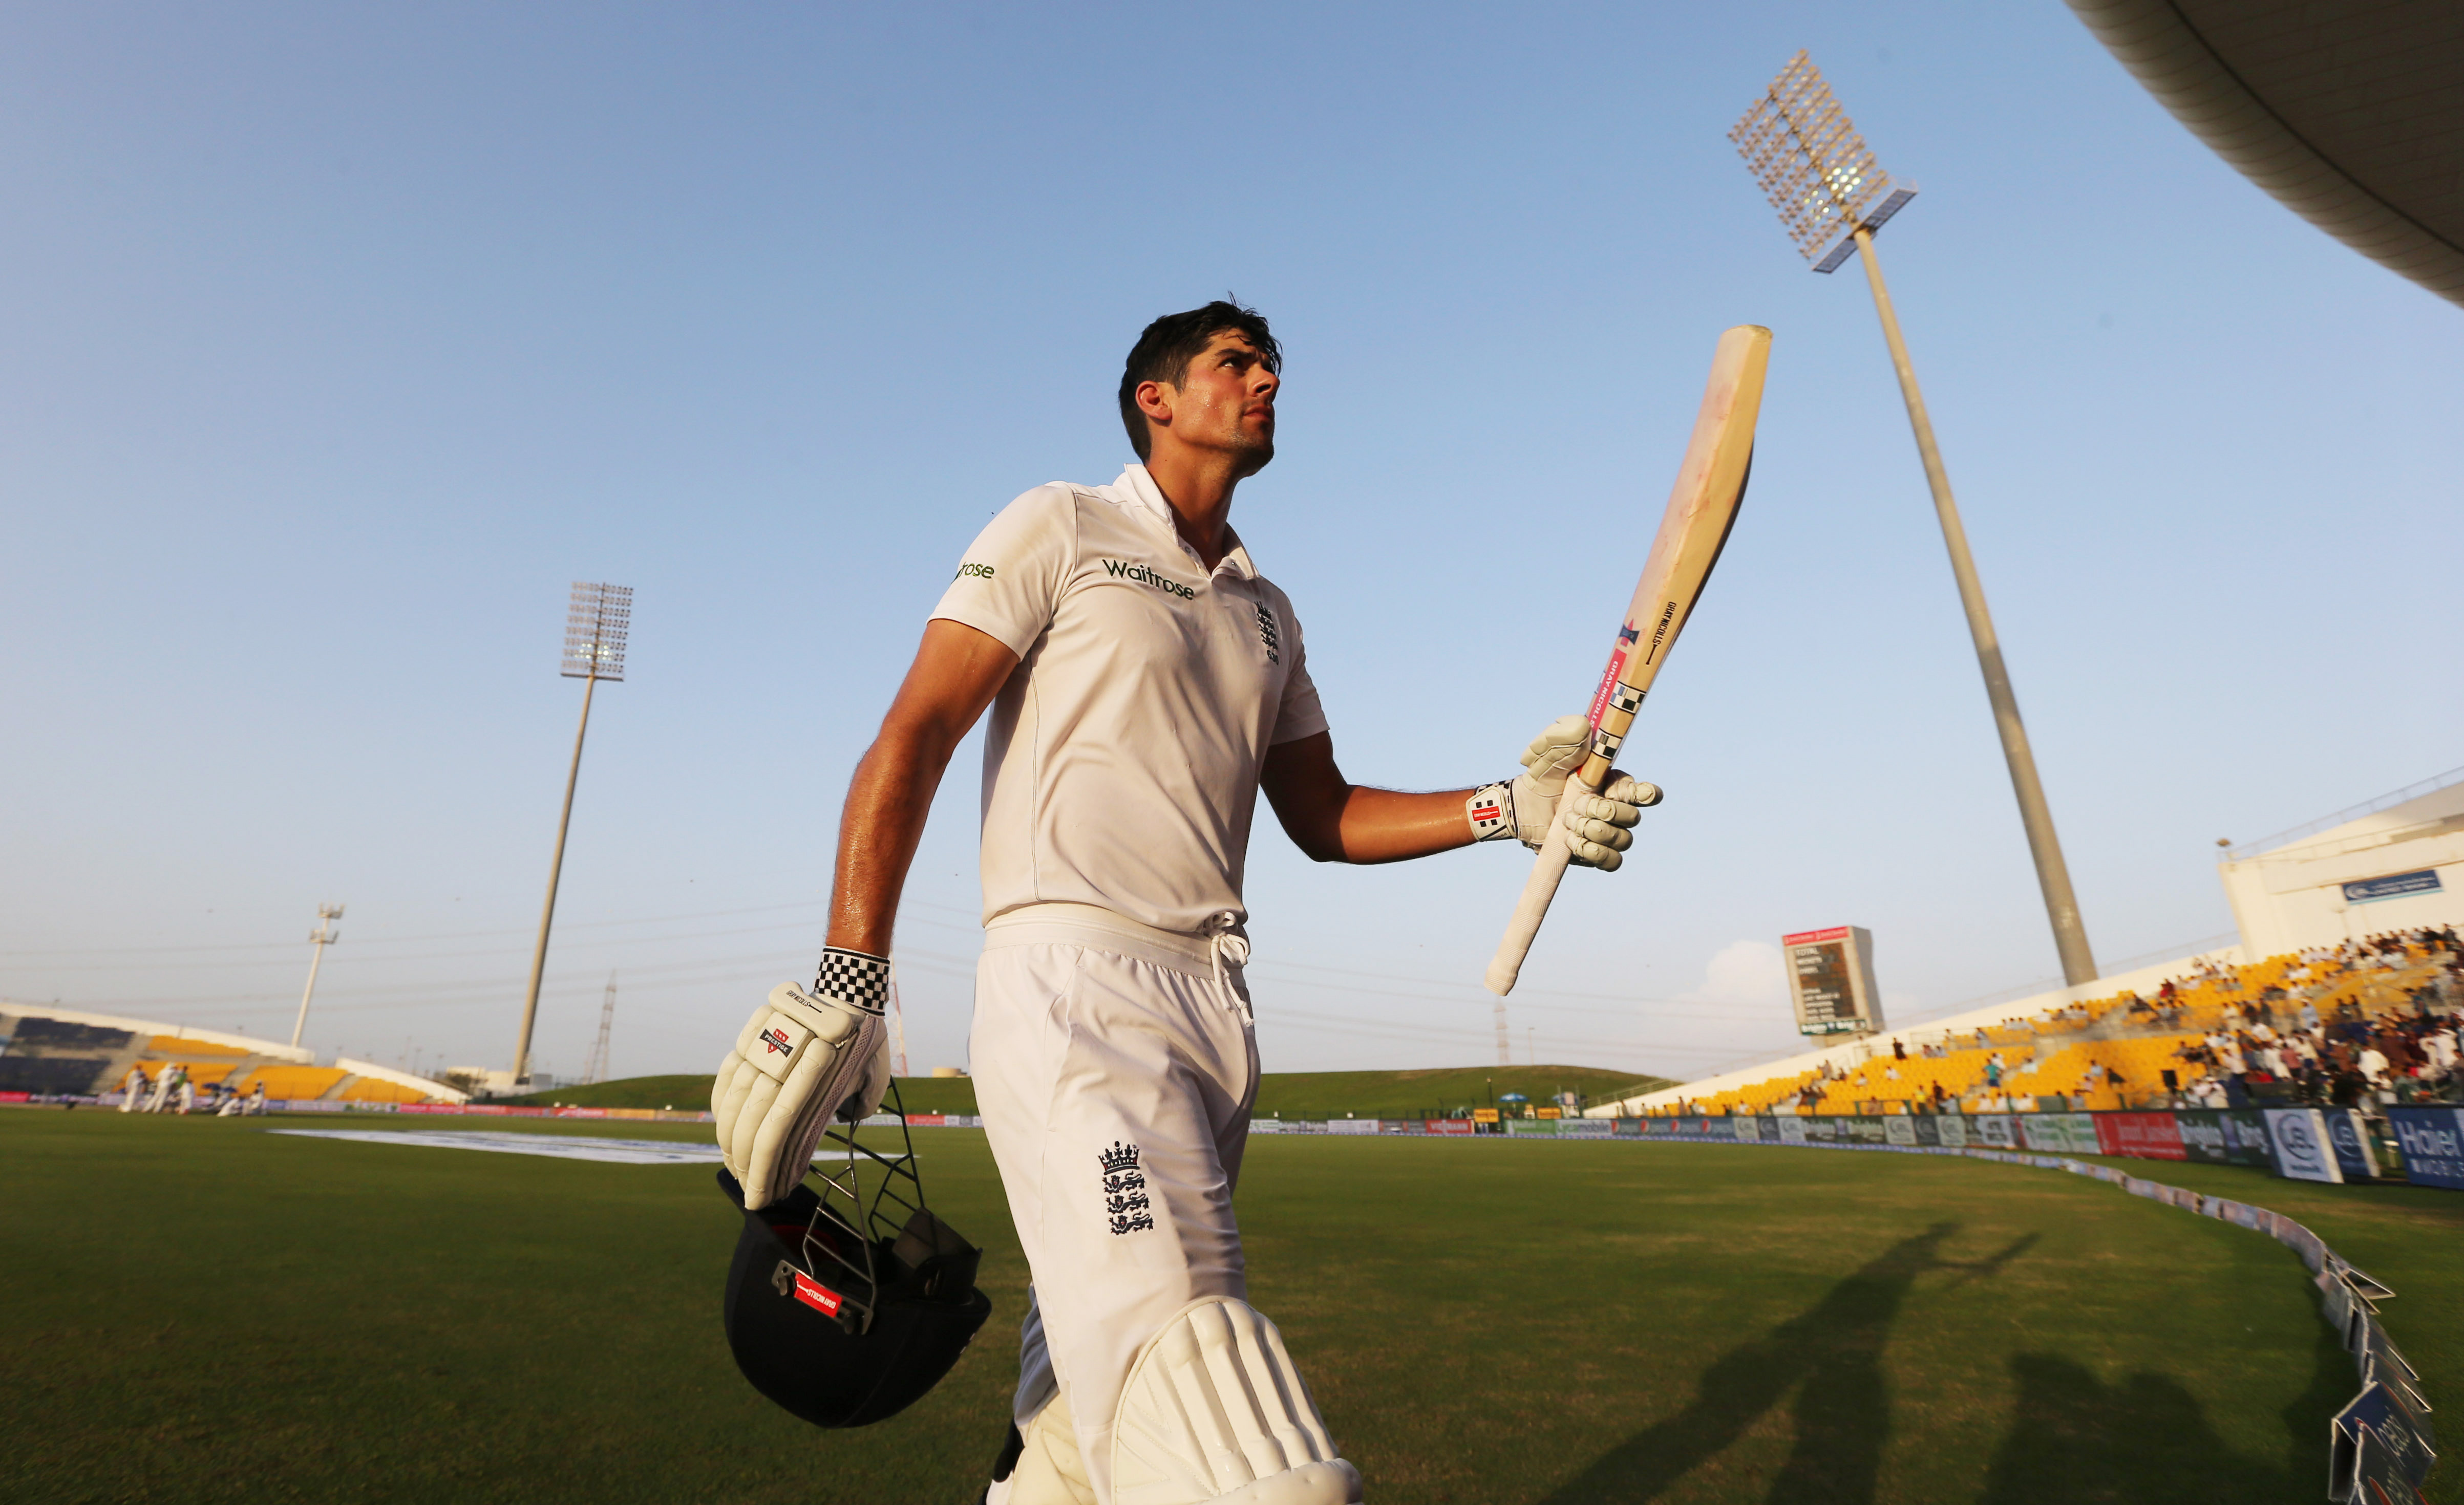 Cricket - Pakistan v England - First Test - Zayed Cricket Stadium, Abu Dhabi, United Arab Emirates - 16/10/15nEngland's Alastair Cook acknowledges the crowd after being dismissed for 263 runsnAction Images via Reuters / Jason O'BriennLivepic